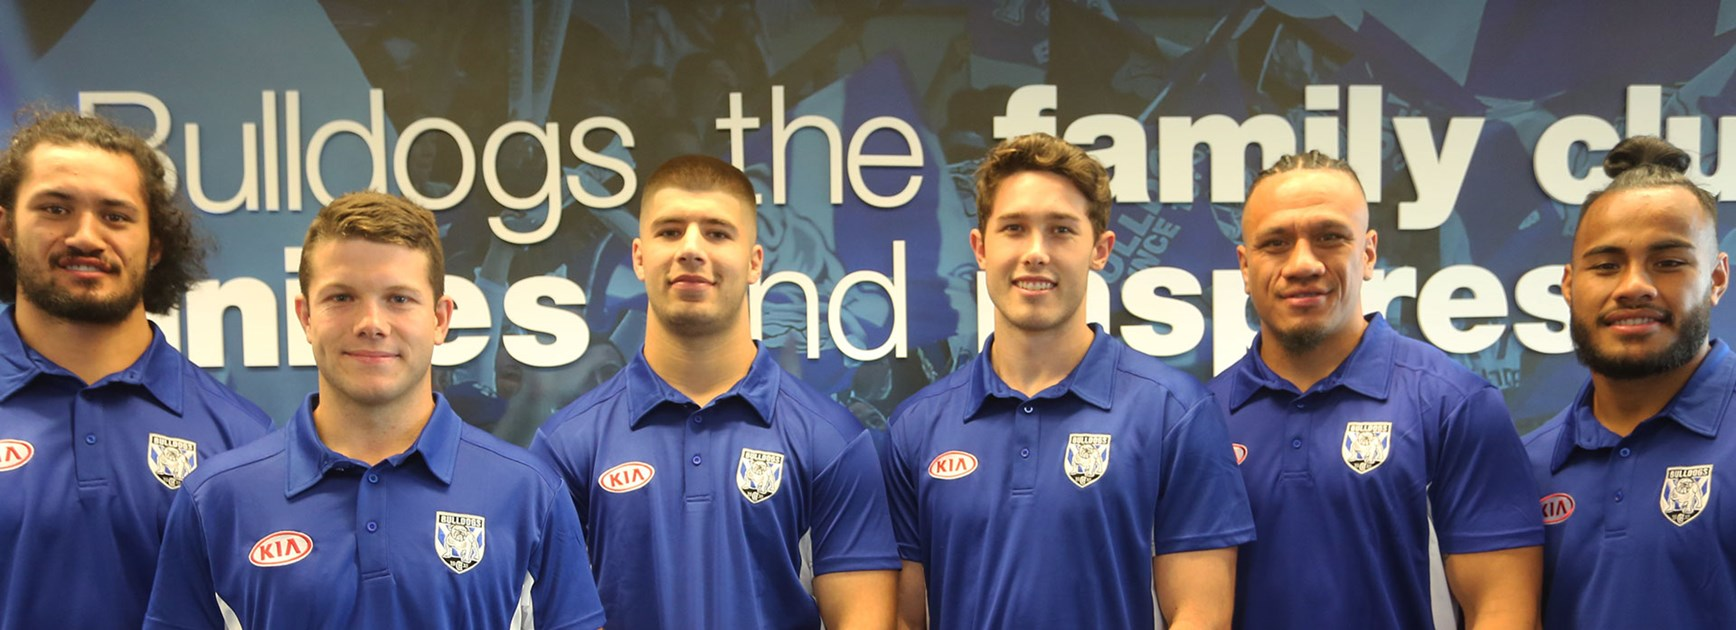 New recruits arrive at Belmore